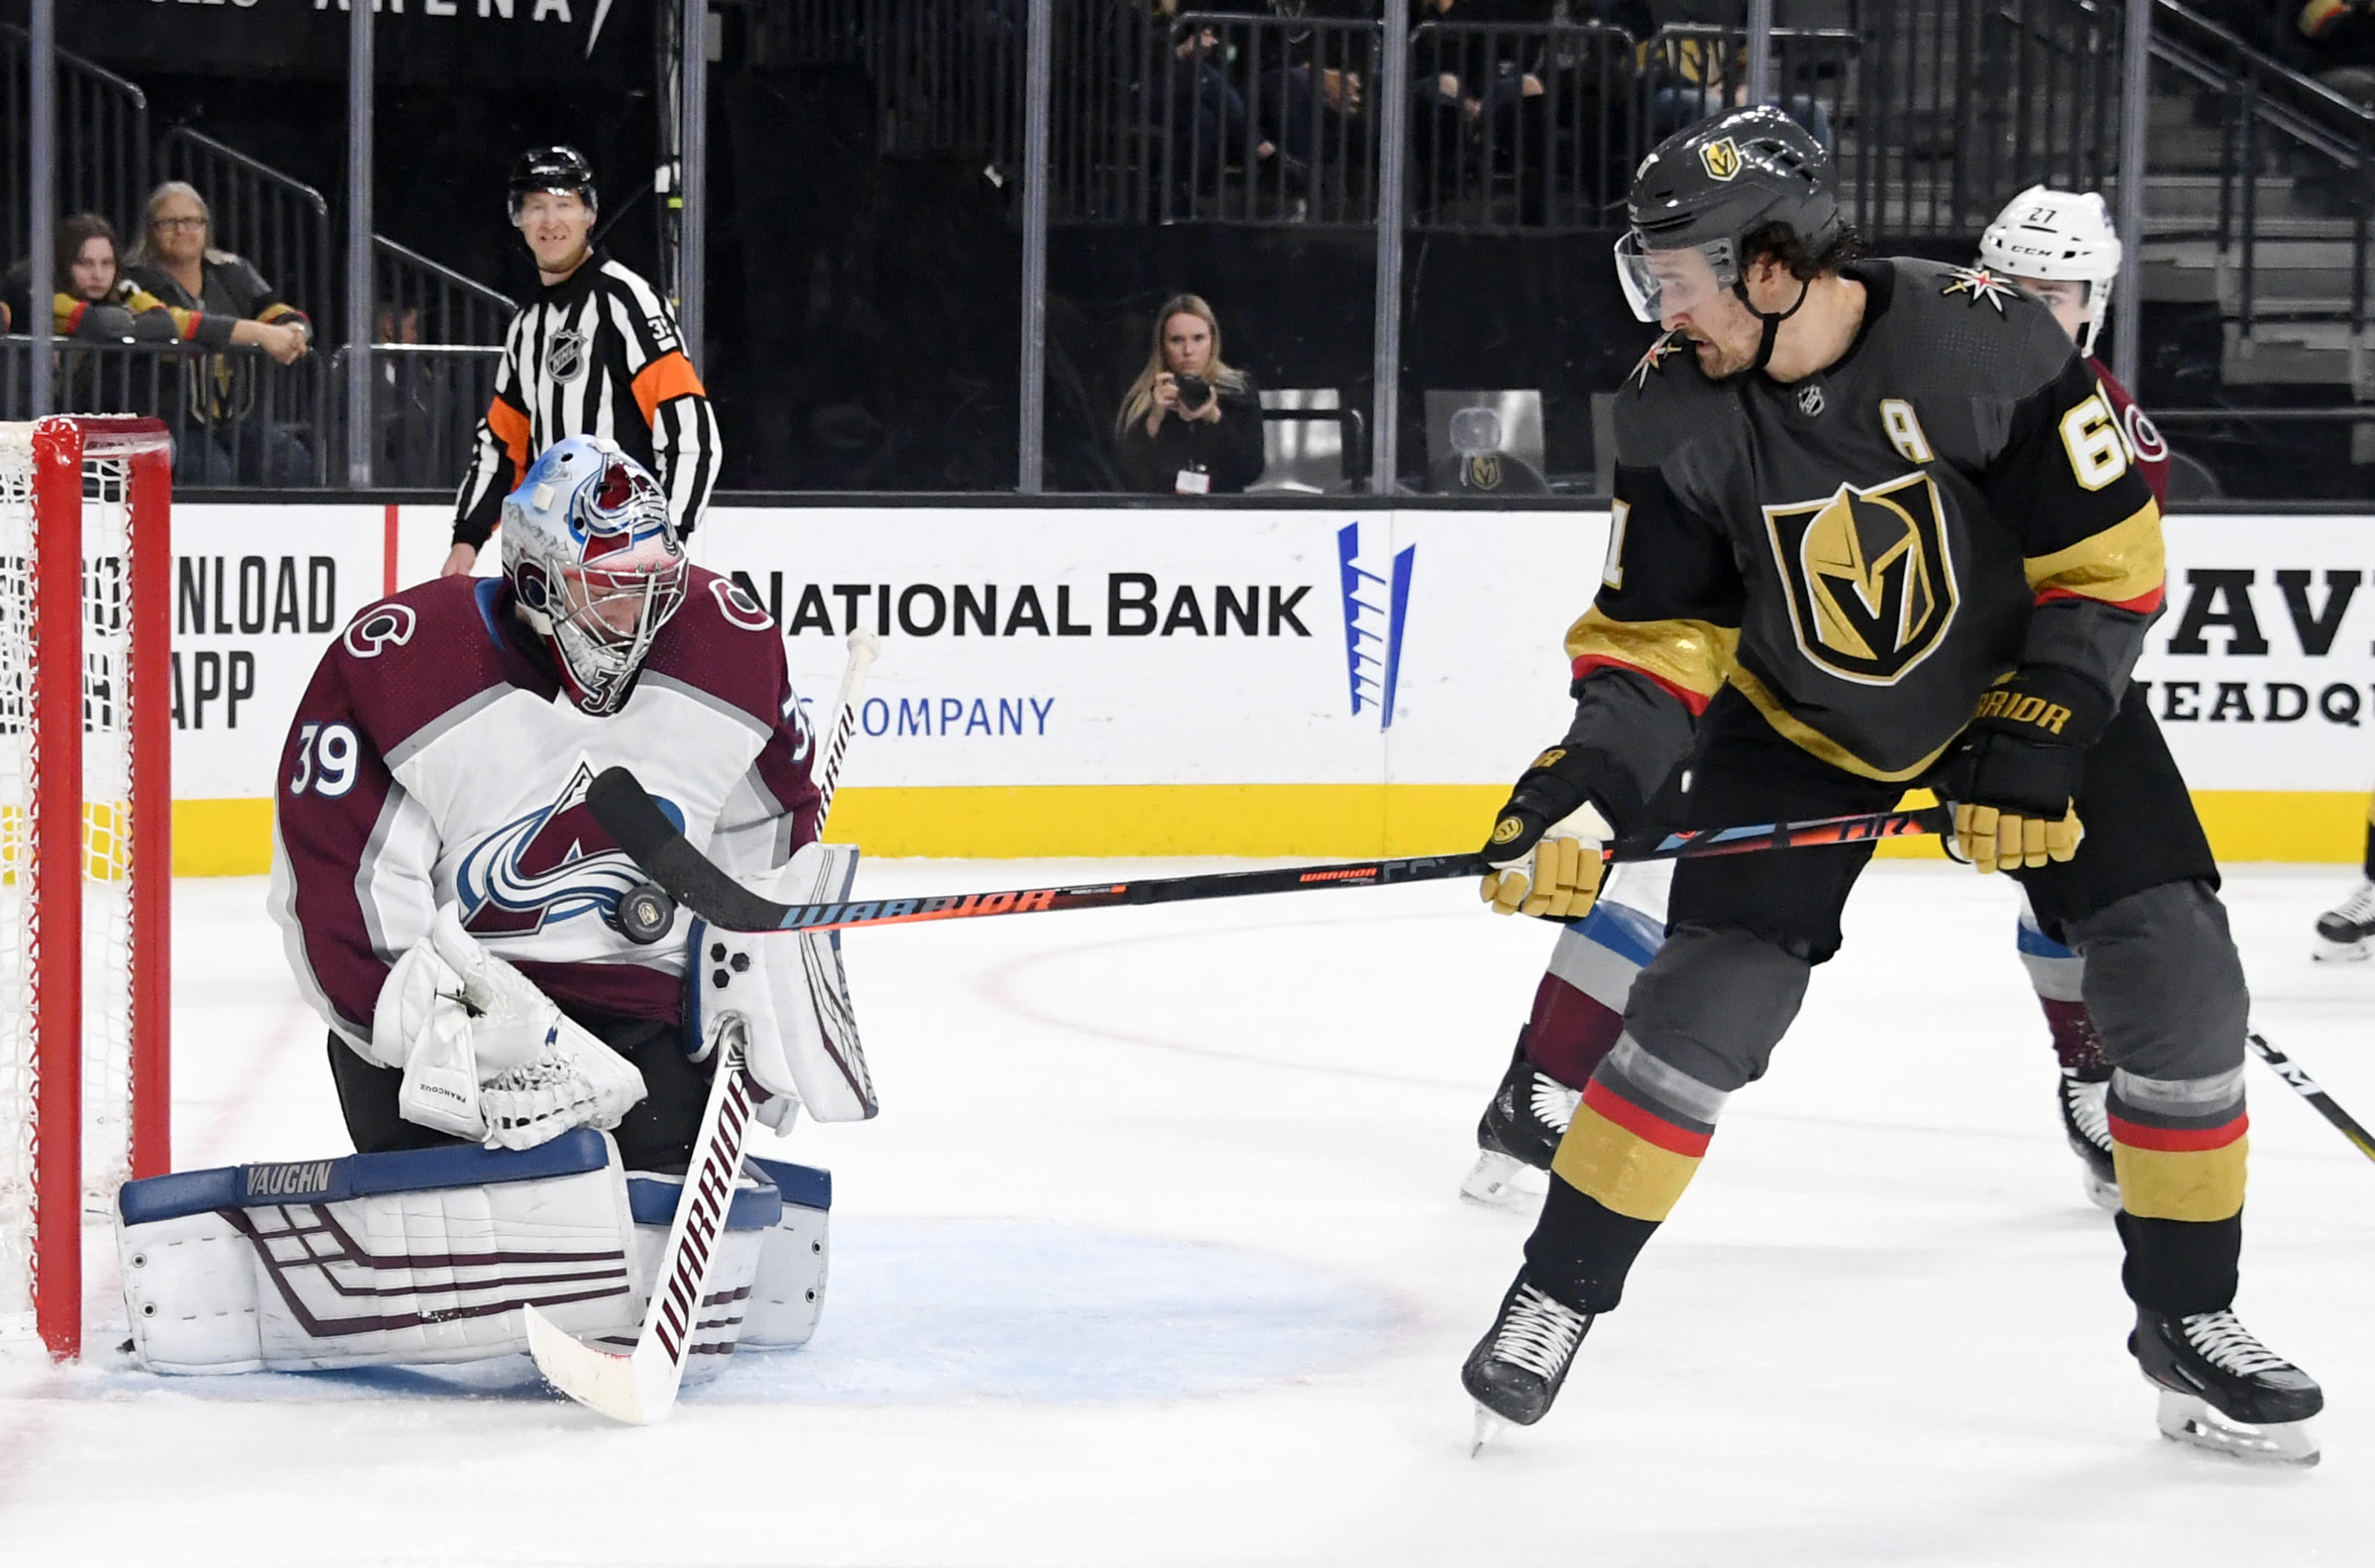 Pavel Francouz #39 of the Colorado Avalanche blocks a shot by Mark Stone #61 of the Vegas Golden Knights.